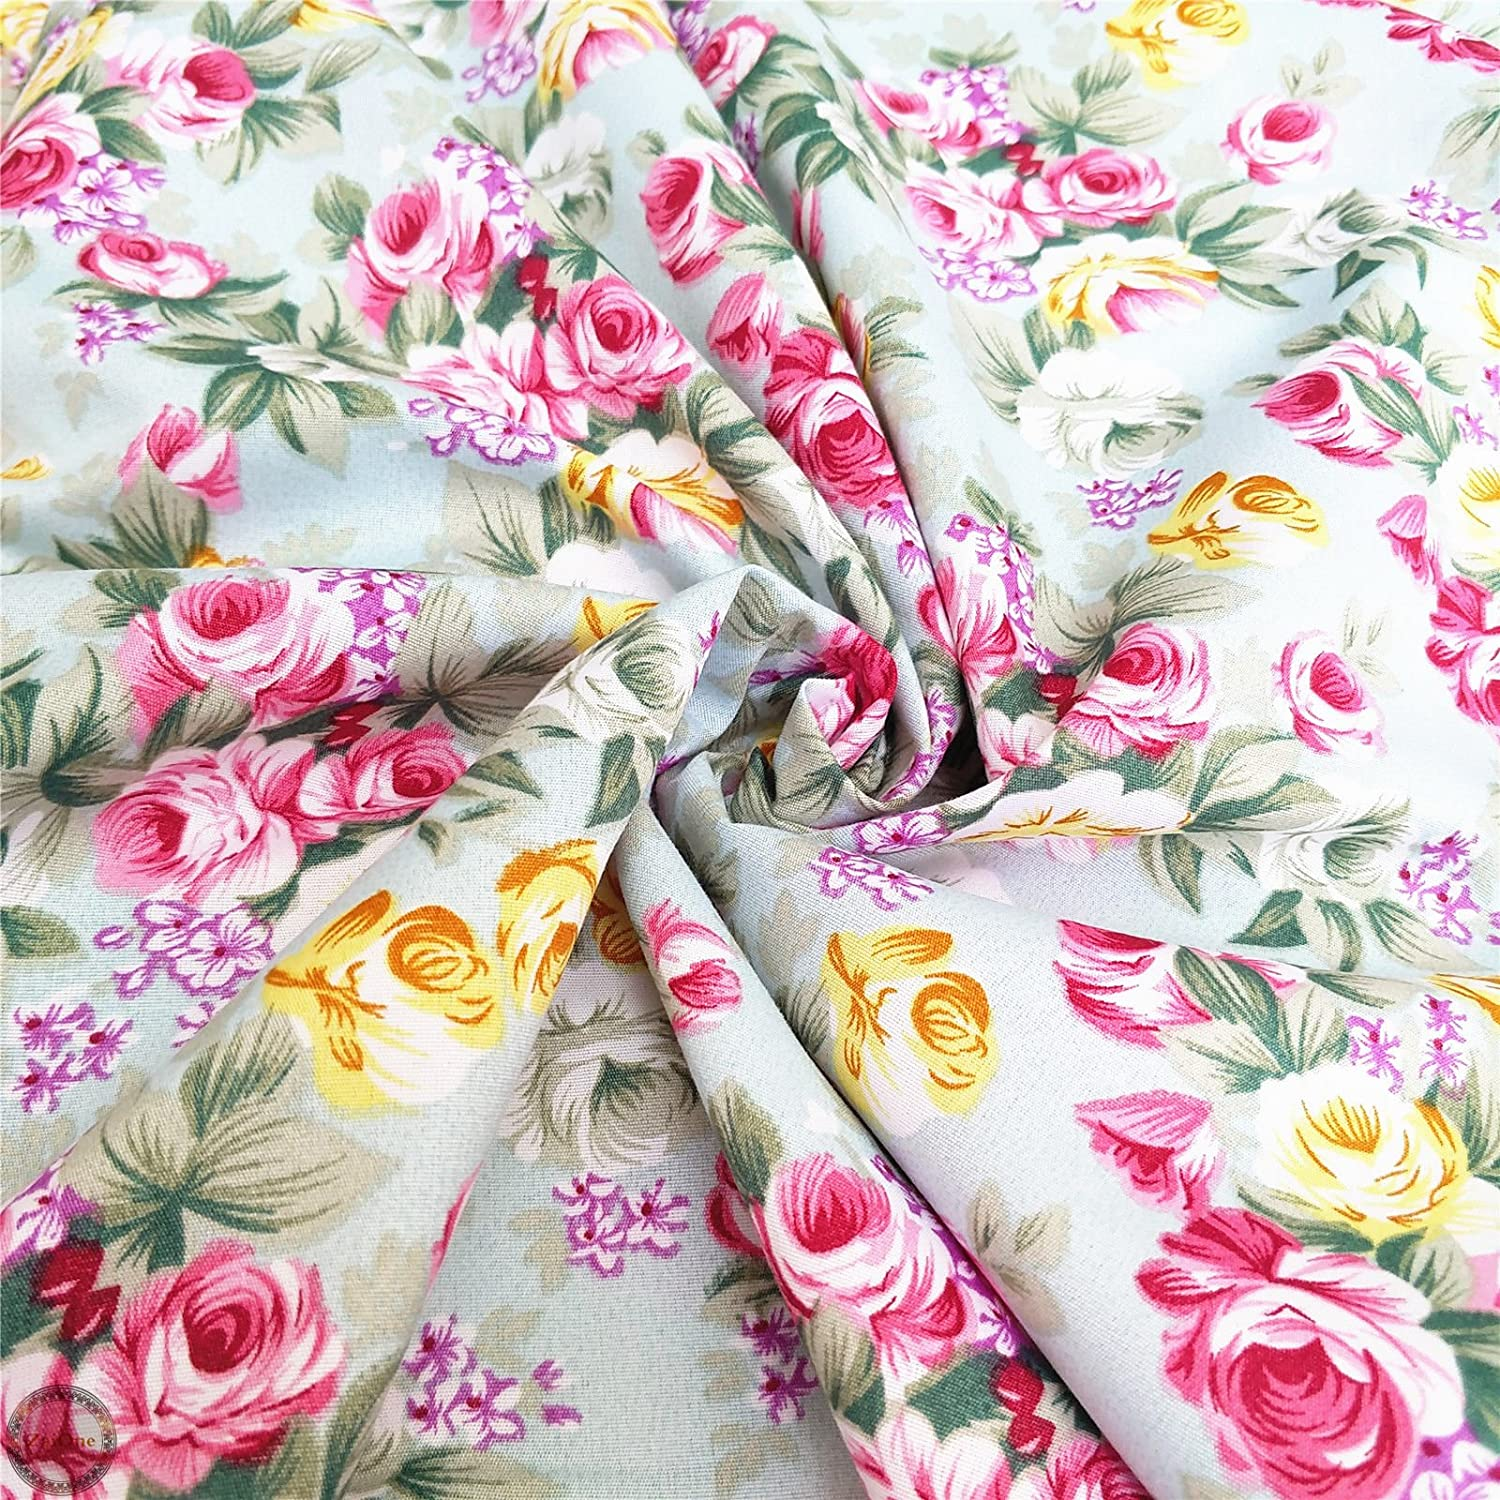 Pink Roses Vintage Style Shabby Chic Country Kitchen Cotton Fabric Red Roses